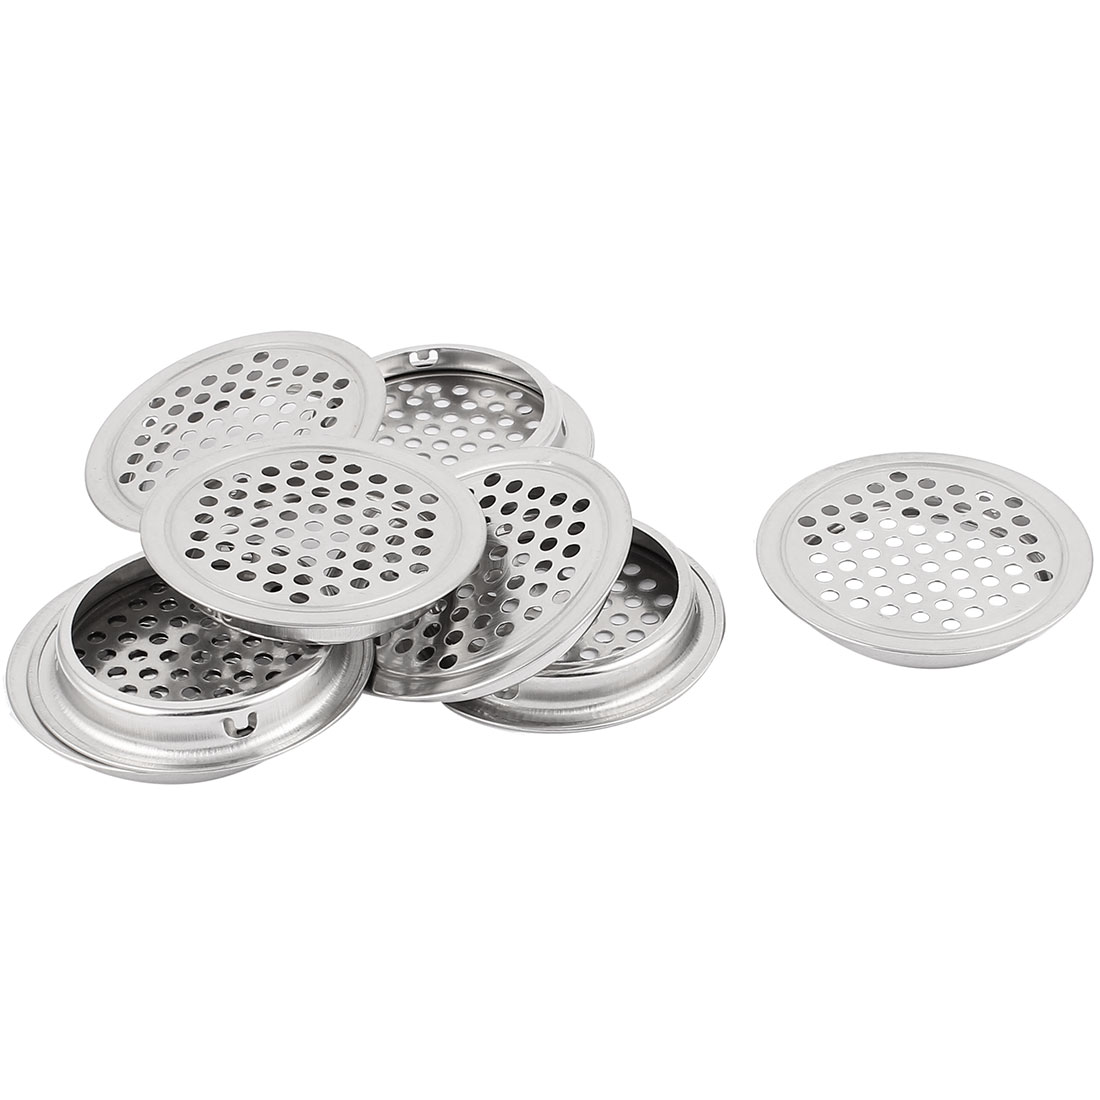 53mm Bottom Dia Mesh Panel Shoes Cupboard Cabinet Air Vent Louver Cover 8pcs